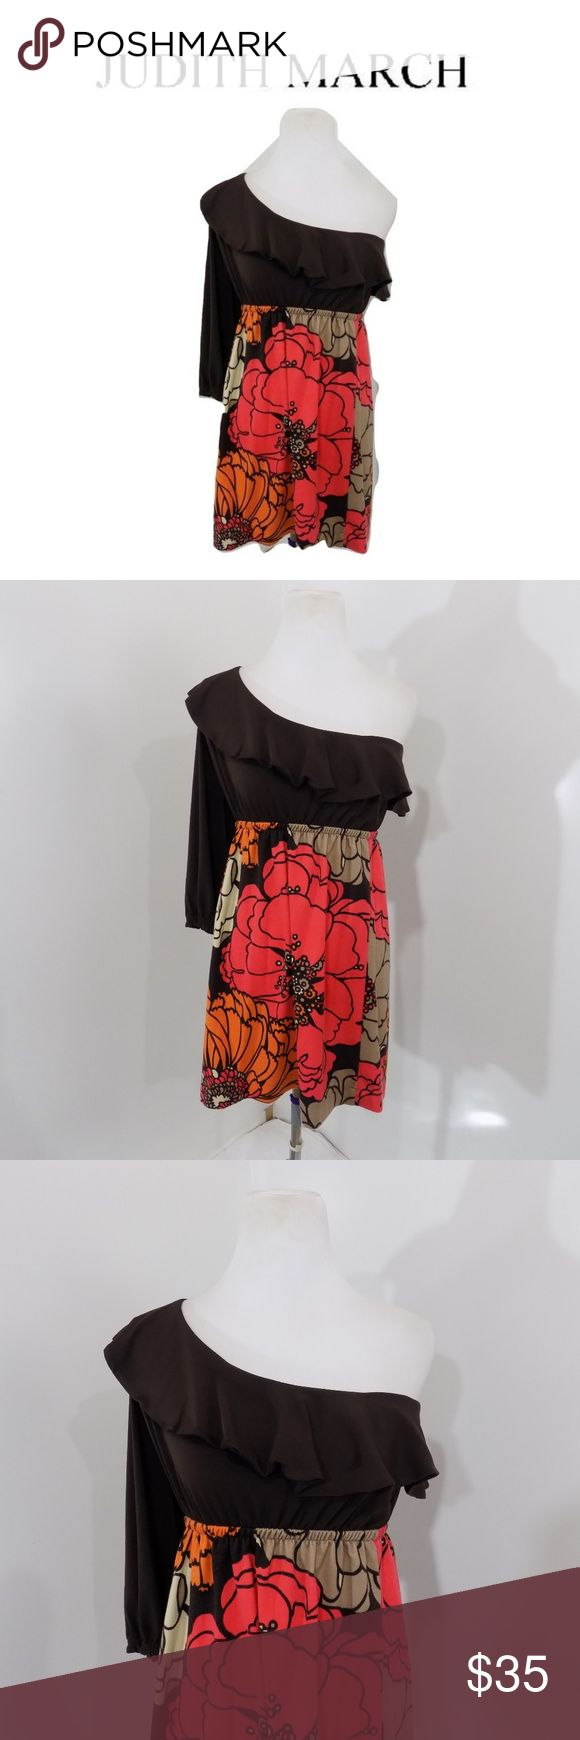 Judith March L Dress One Shoulder Stretch Knit Super cute.  One shoulder design.  Stretch Knit.  By Judith March.  Solid Top / floral skirt.    Brand:  Judith March.    Color:  Multi-Color   Tag Size:    Misses  Large.    Bust:  38 in.    Waist: 32 in.    Hips:  40 in.    Sleeve Length:  23 in.    Length:  32 in.    Materials:  Polyester.    Care Instructions:  Machine wash, line dry. Judith March Dresses One Shoulder